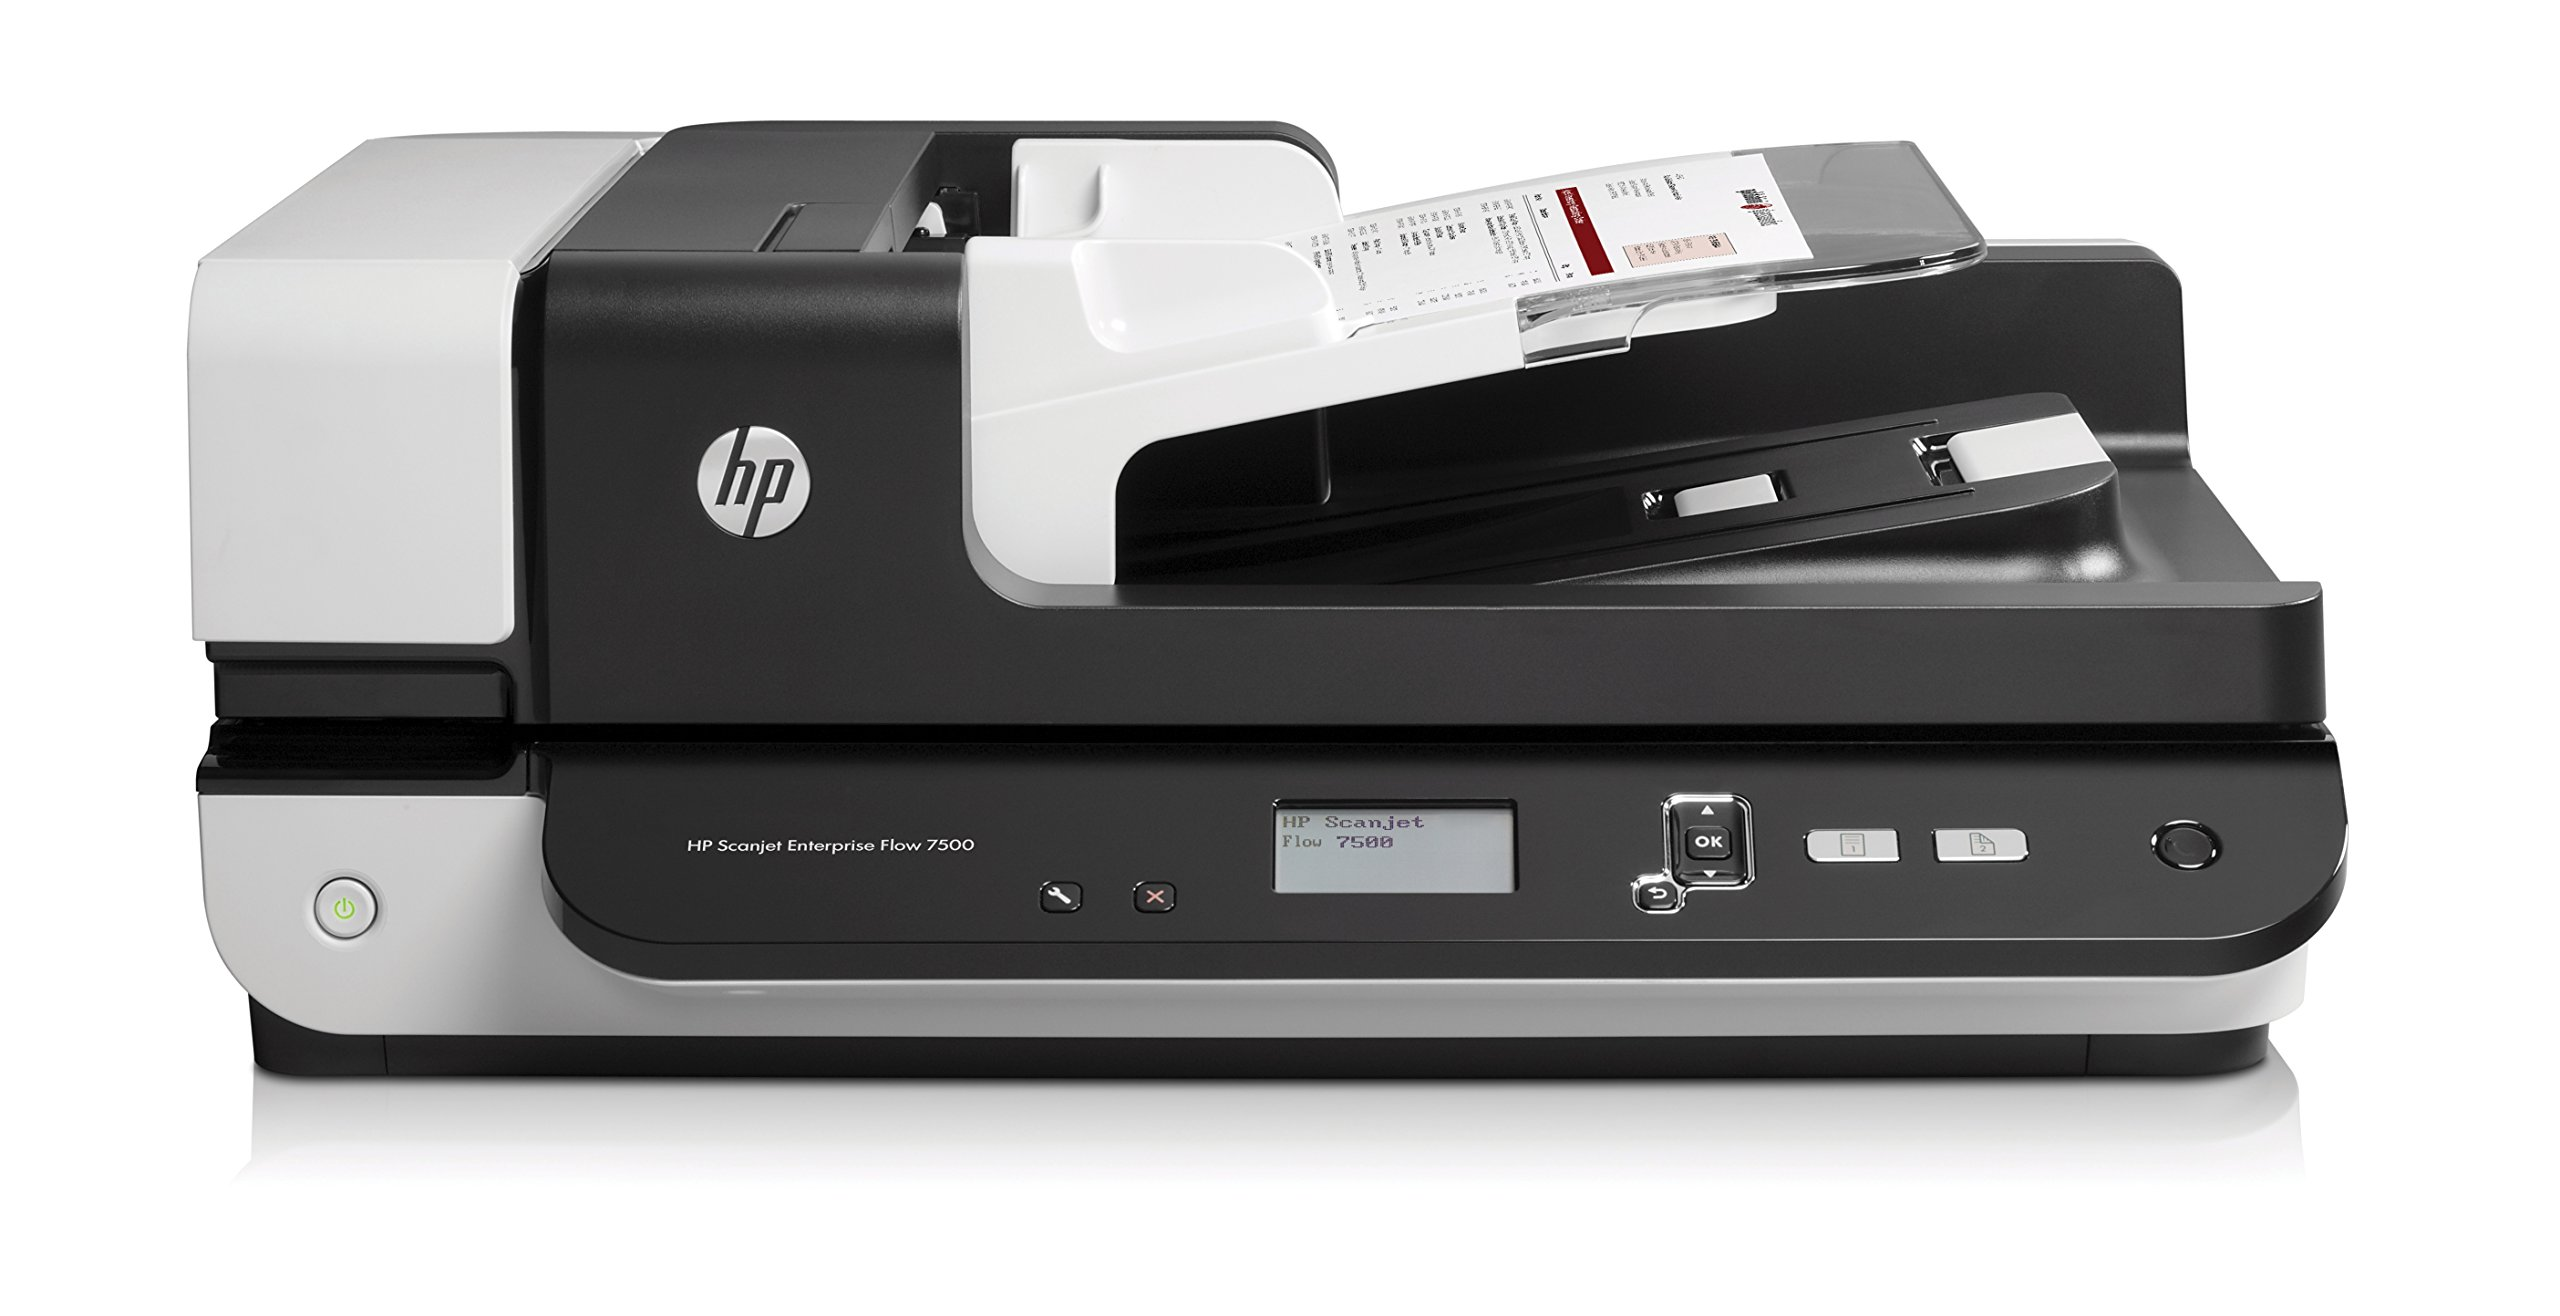 HP ScanJet Enterprise Flow 7500 Flatbed OCR Scanner